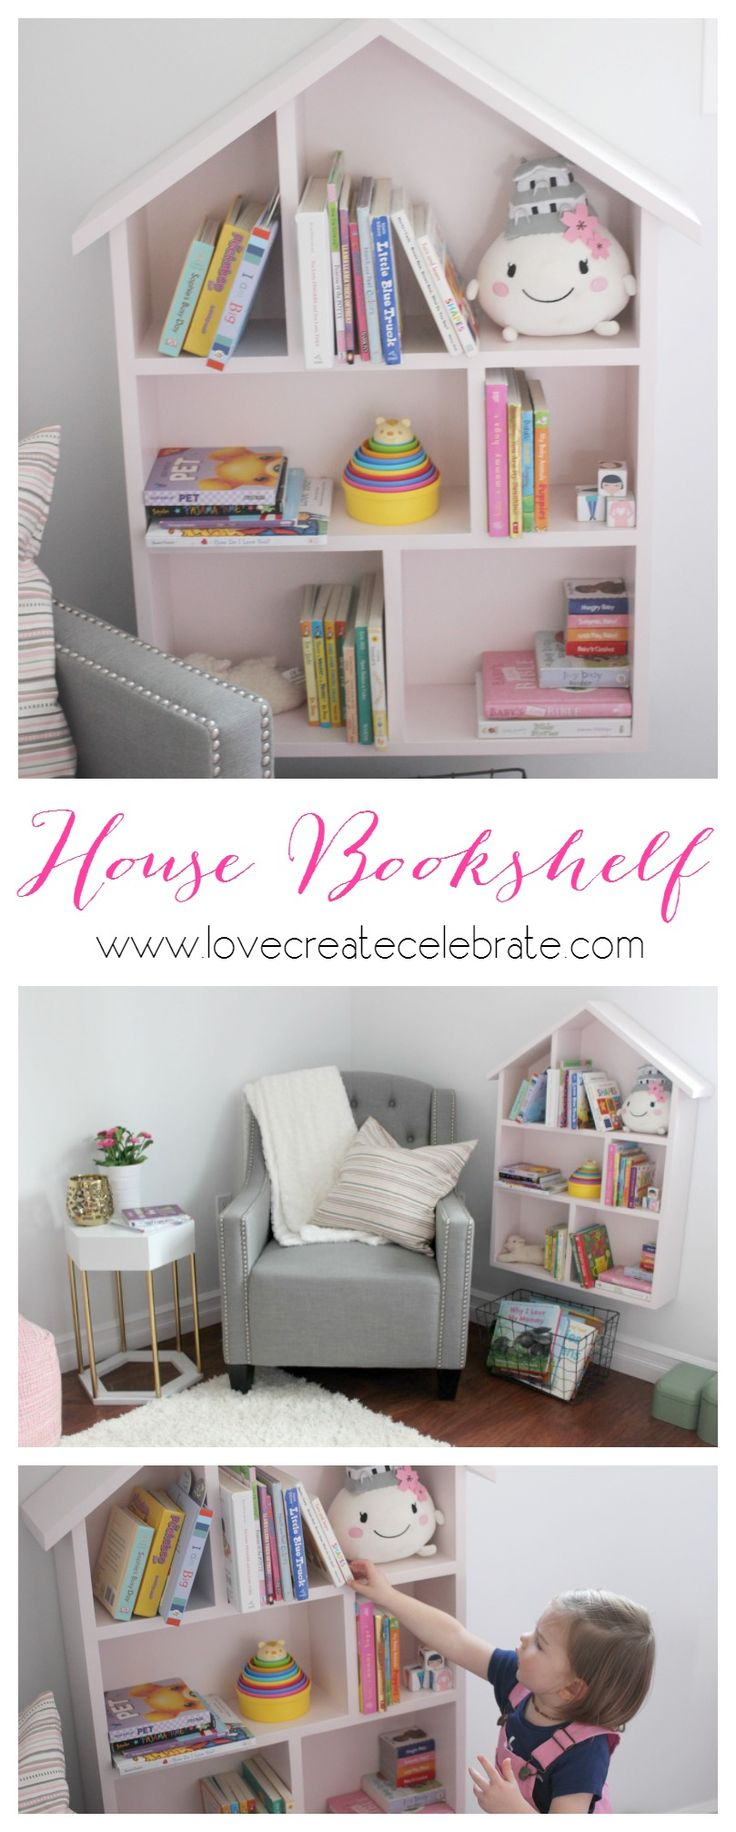 DIY House Bookshelf for a child's bedroom or playroom. Cute decor piece! Includes tutorial and design plans.